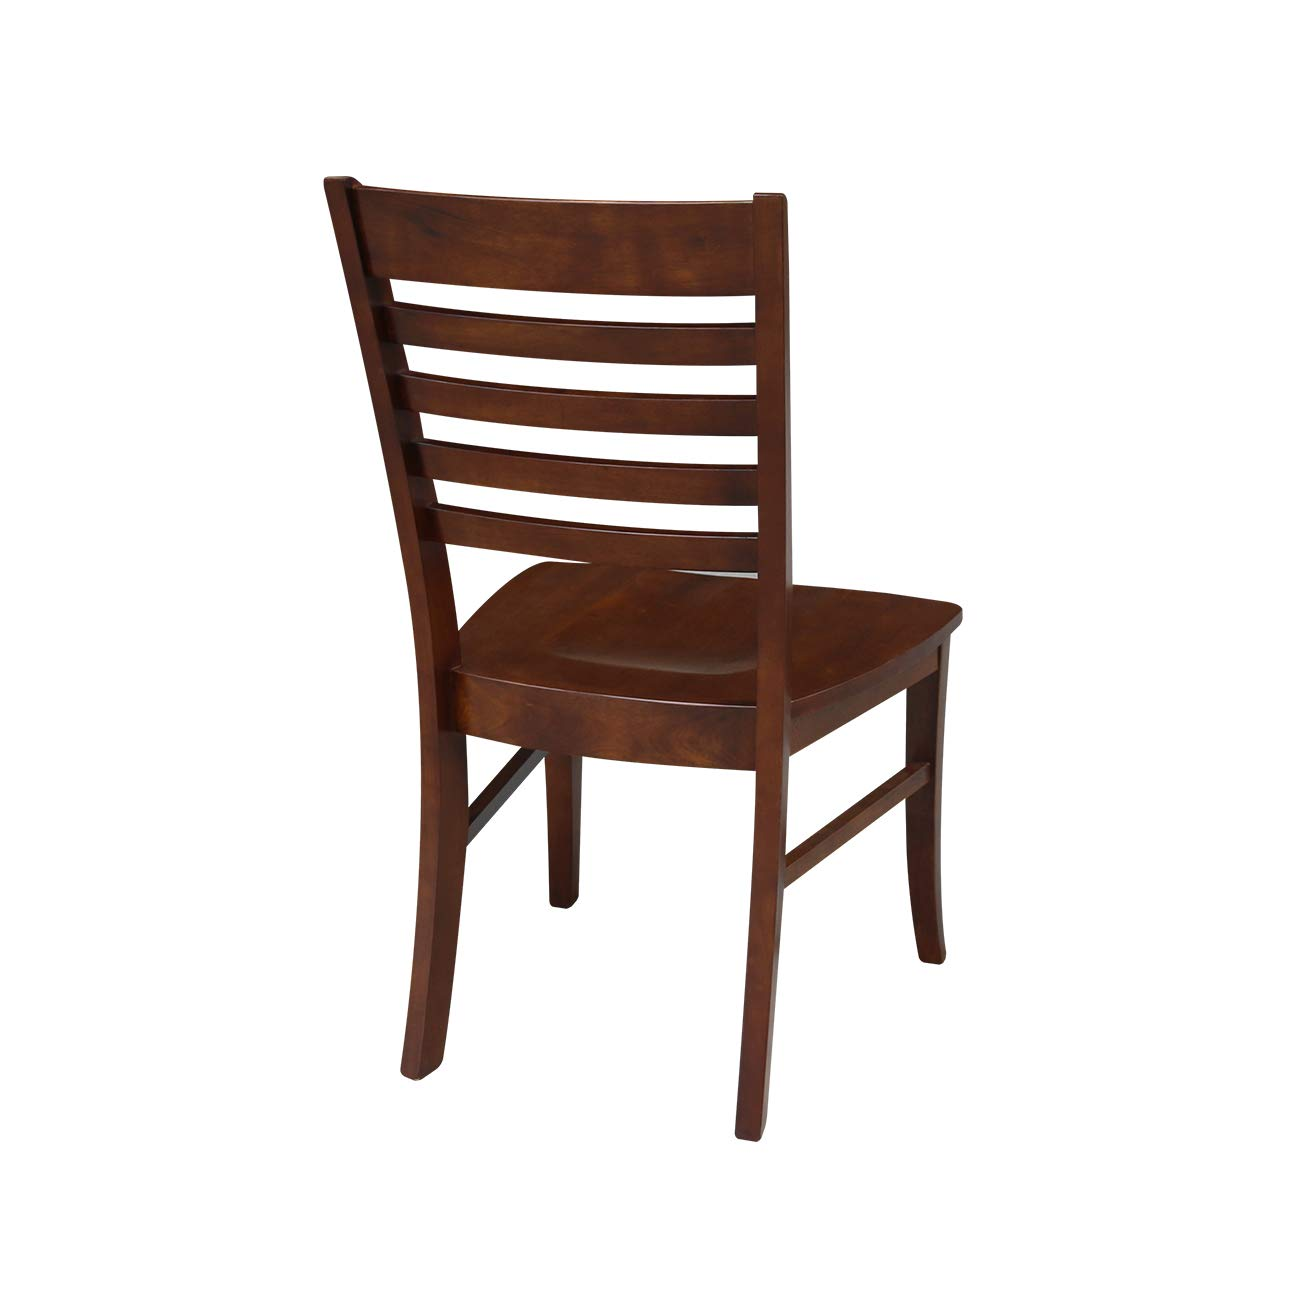 International Concepts Roma Ladder Back Chair, Unfinished